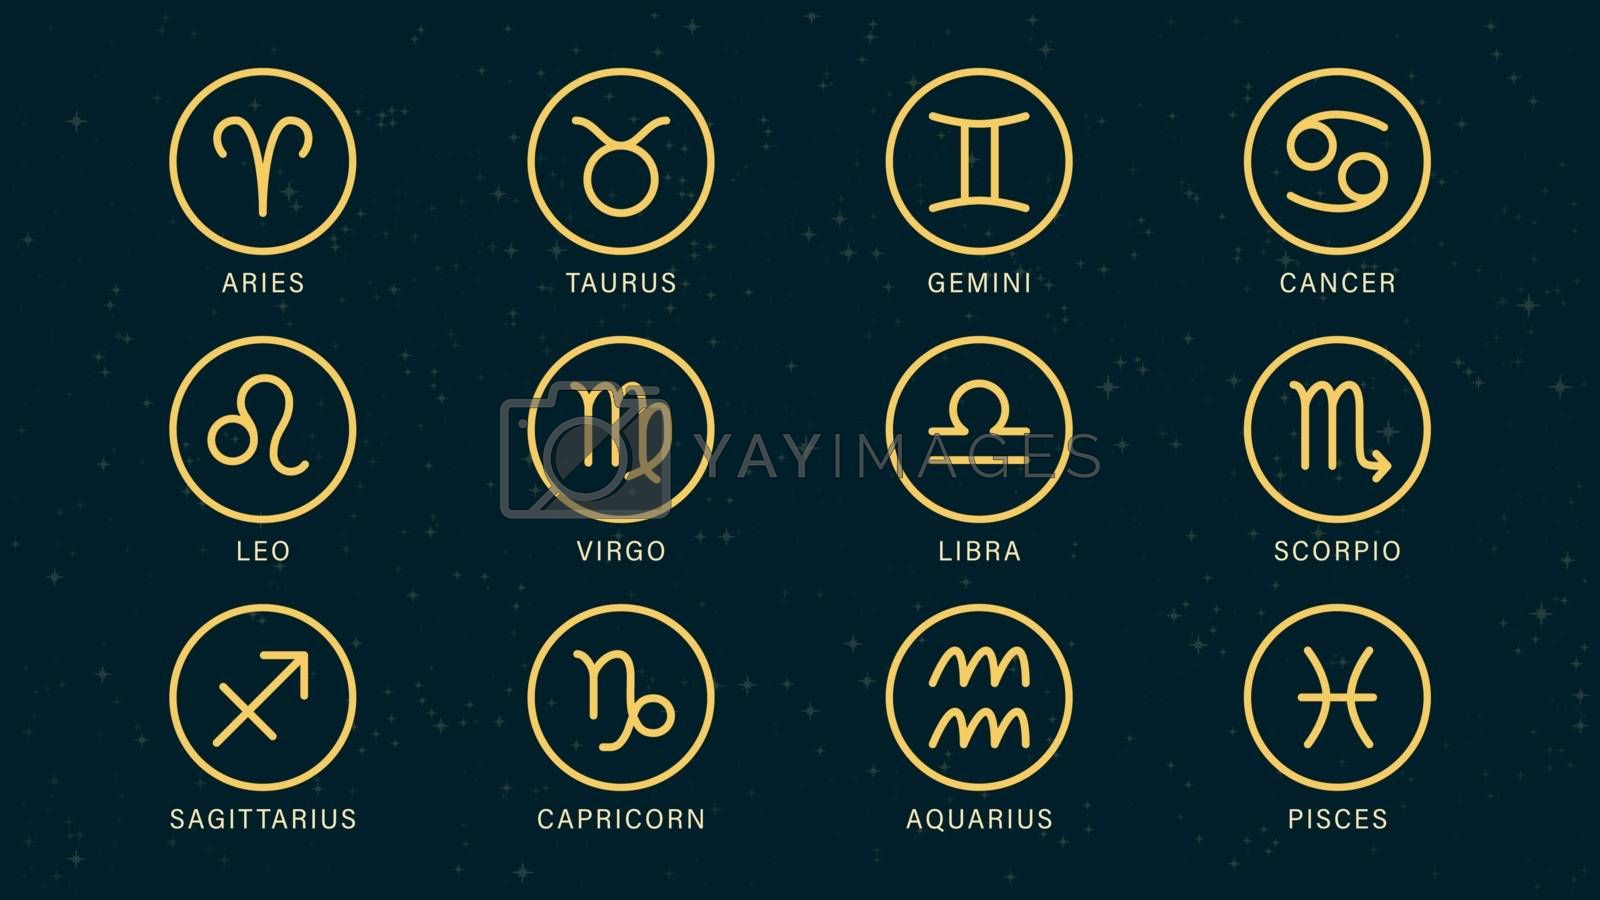 Detailed flat vector set of the zodiac horoscope signs as symbols on top of a dimmed semi-accurate star map.